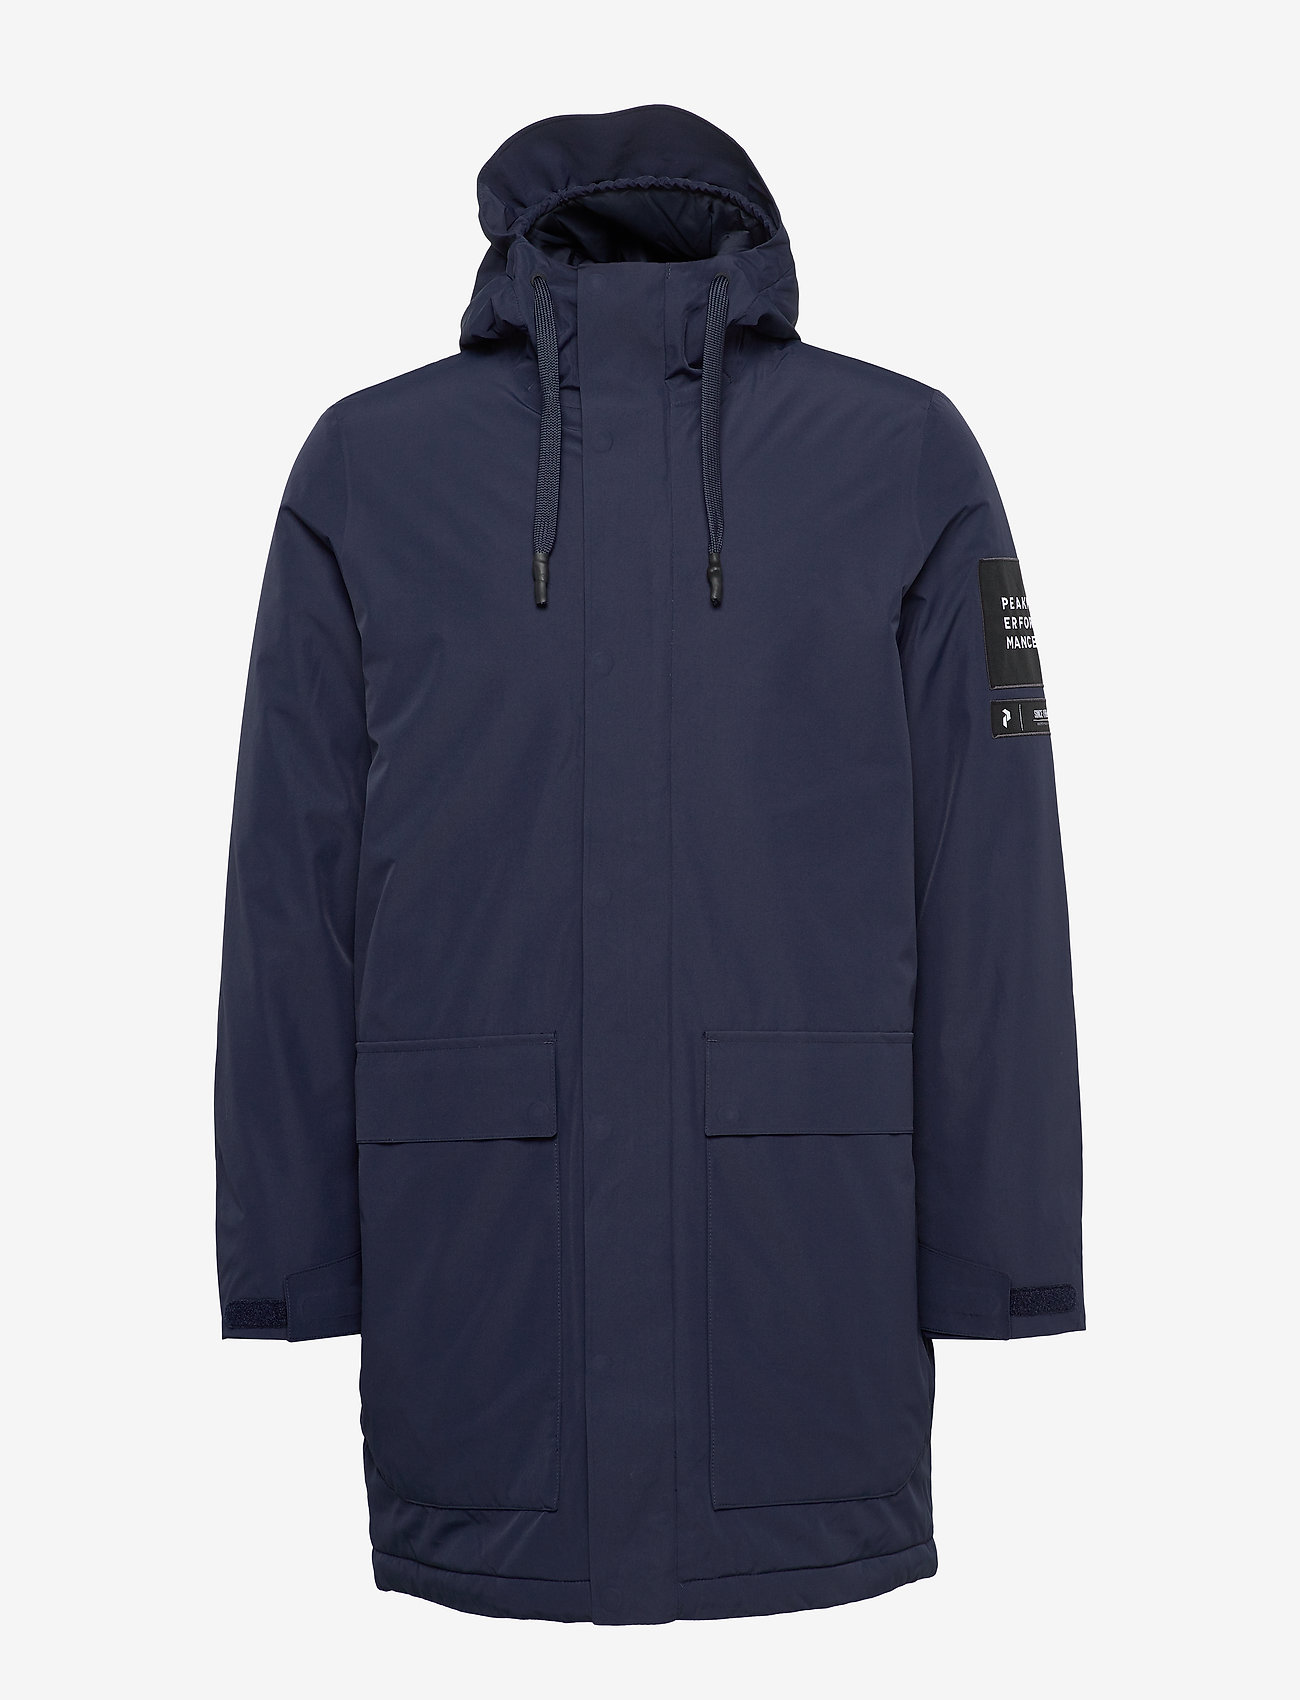 Peak Performance - UNIT J - insulated jackets - blue shadow - 1